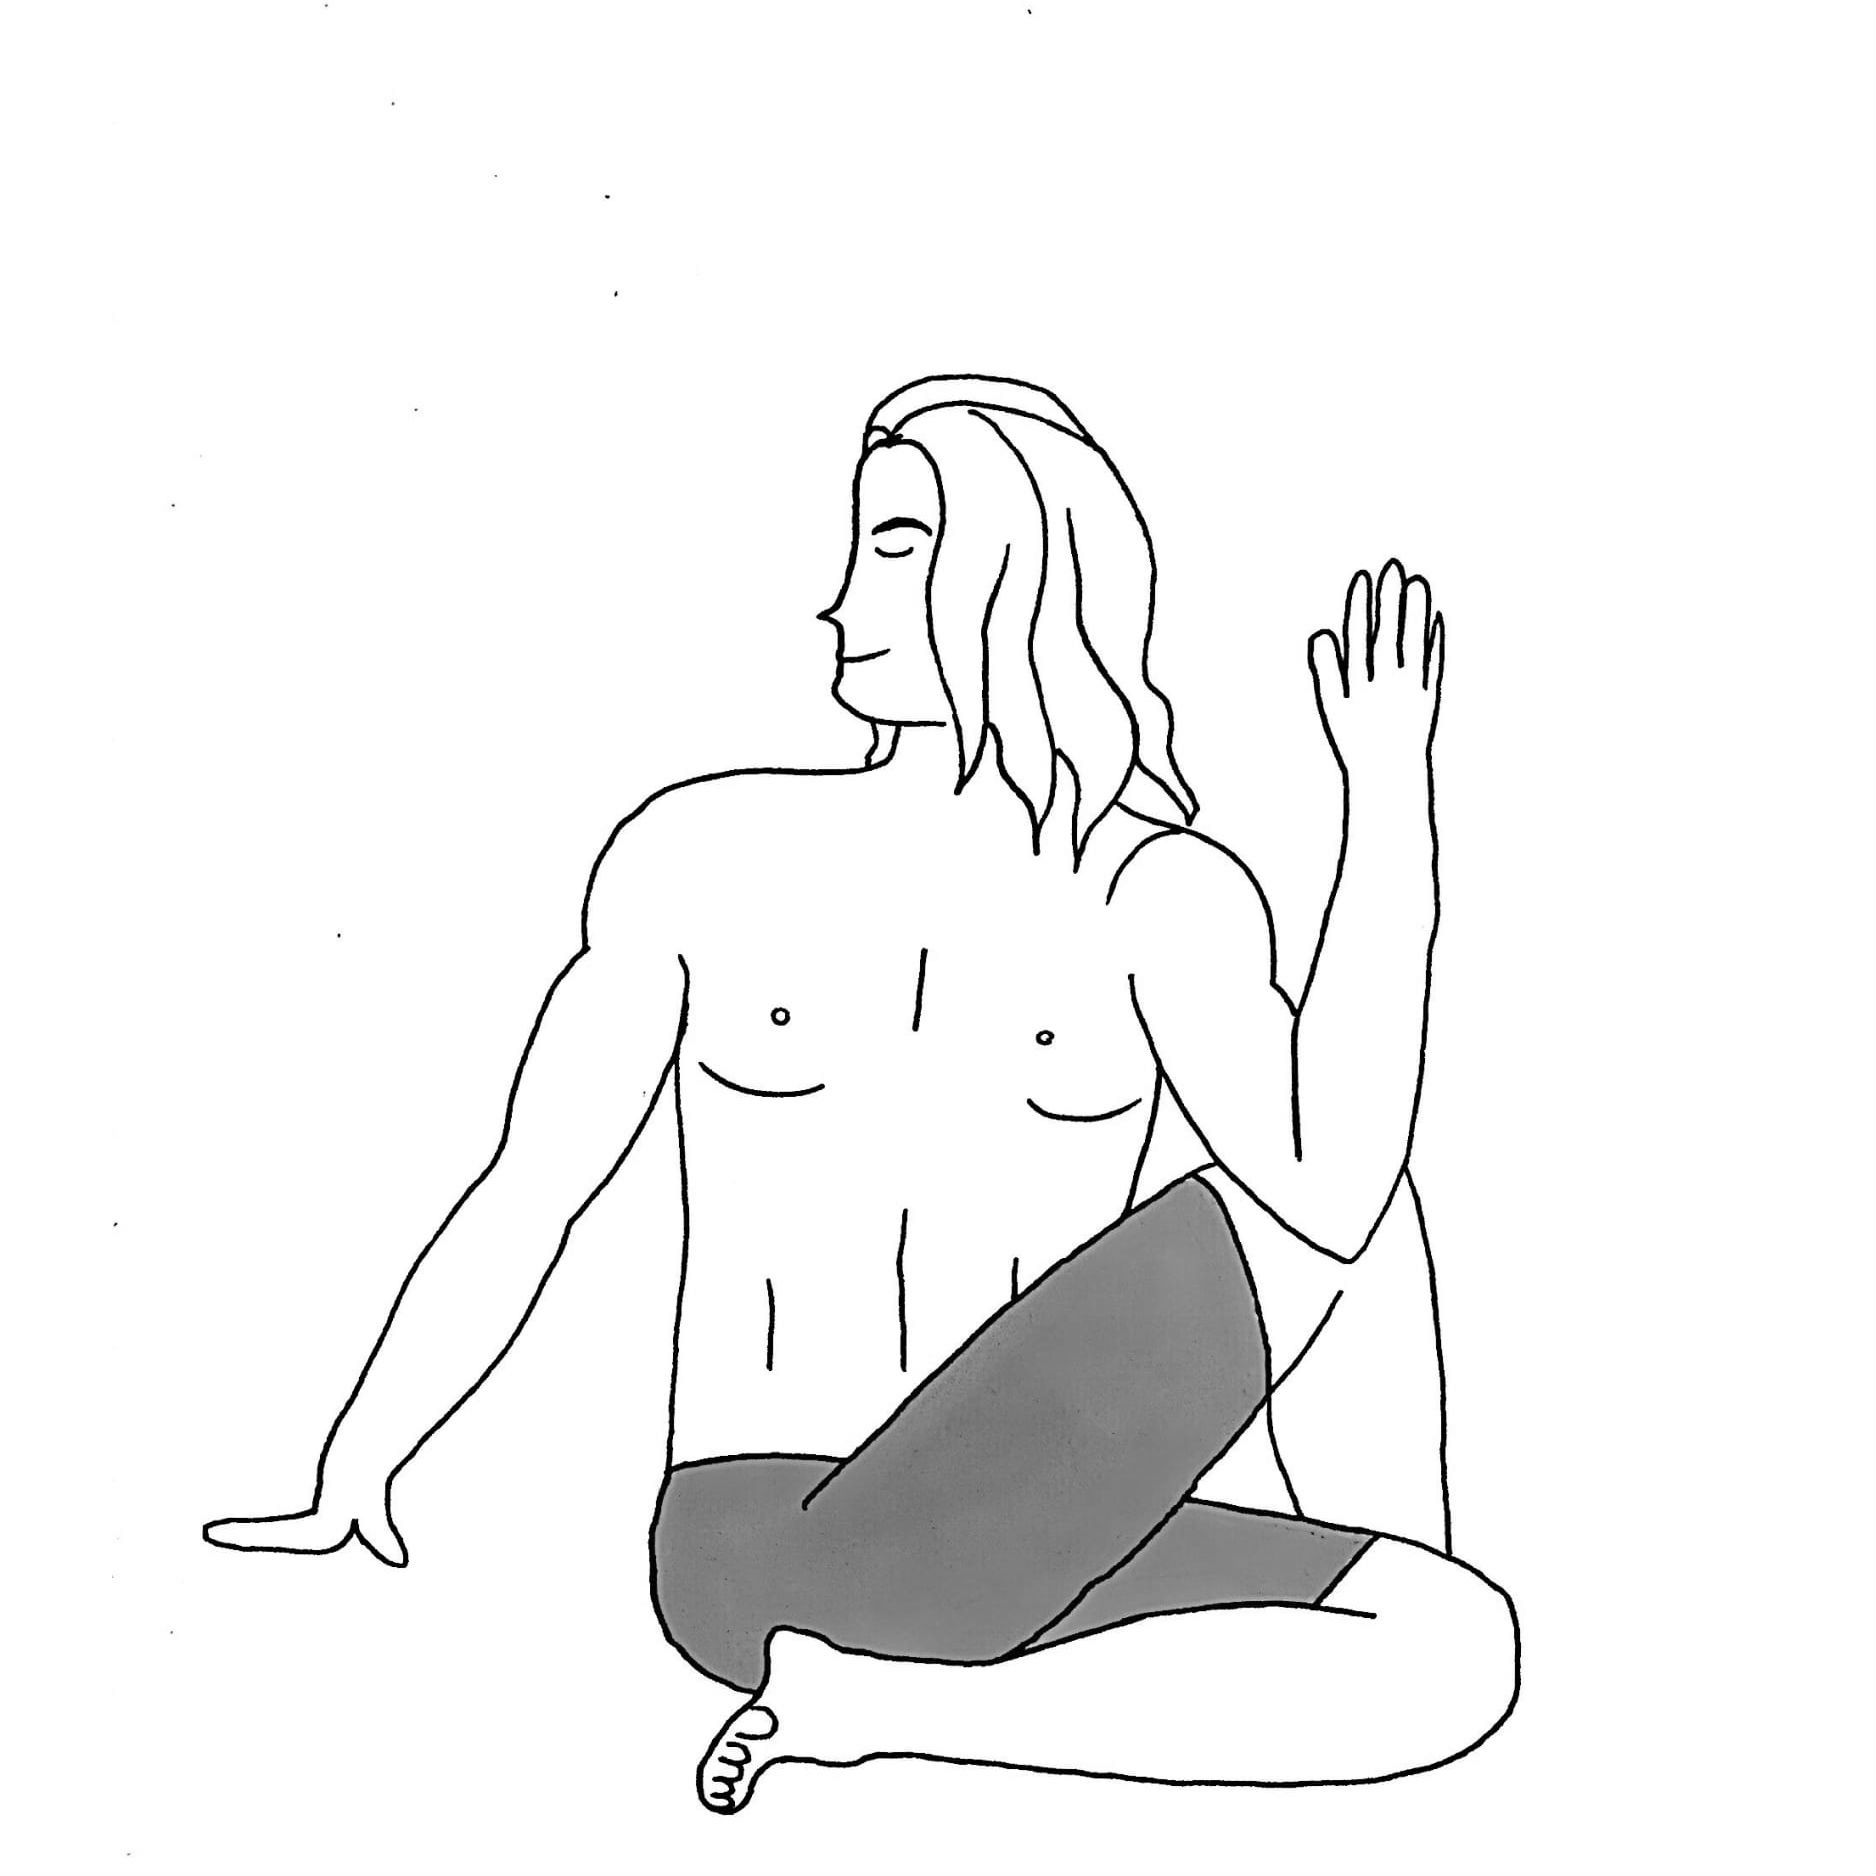 Half Lord of the Fishes Pose - Ardha Matsyendrasana